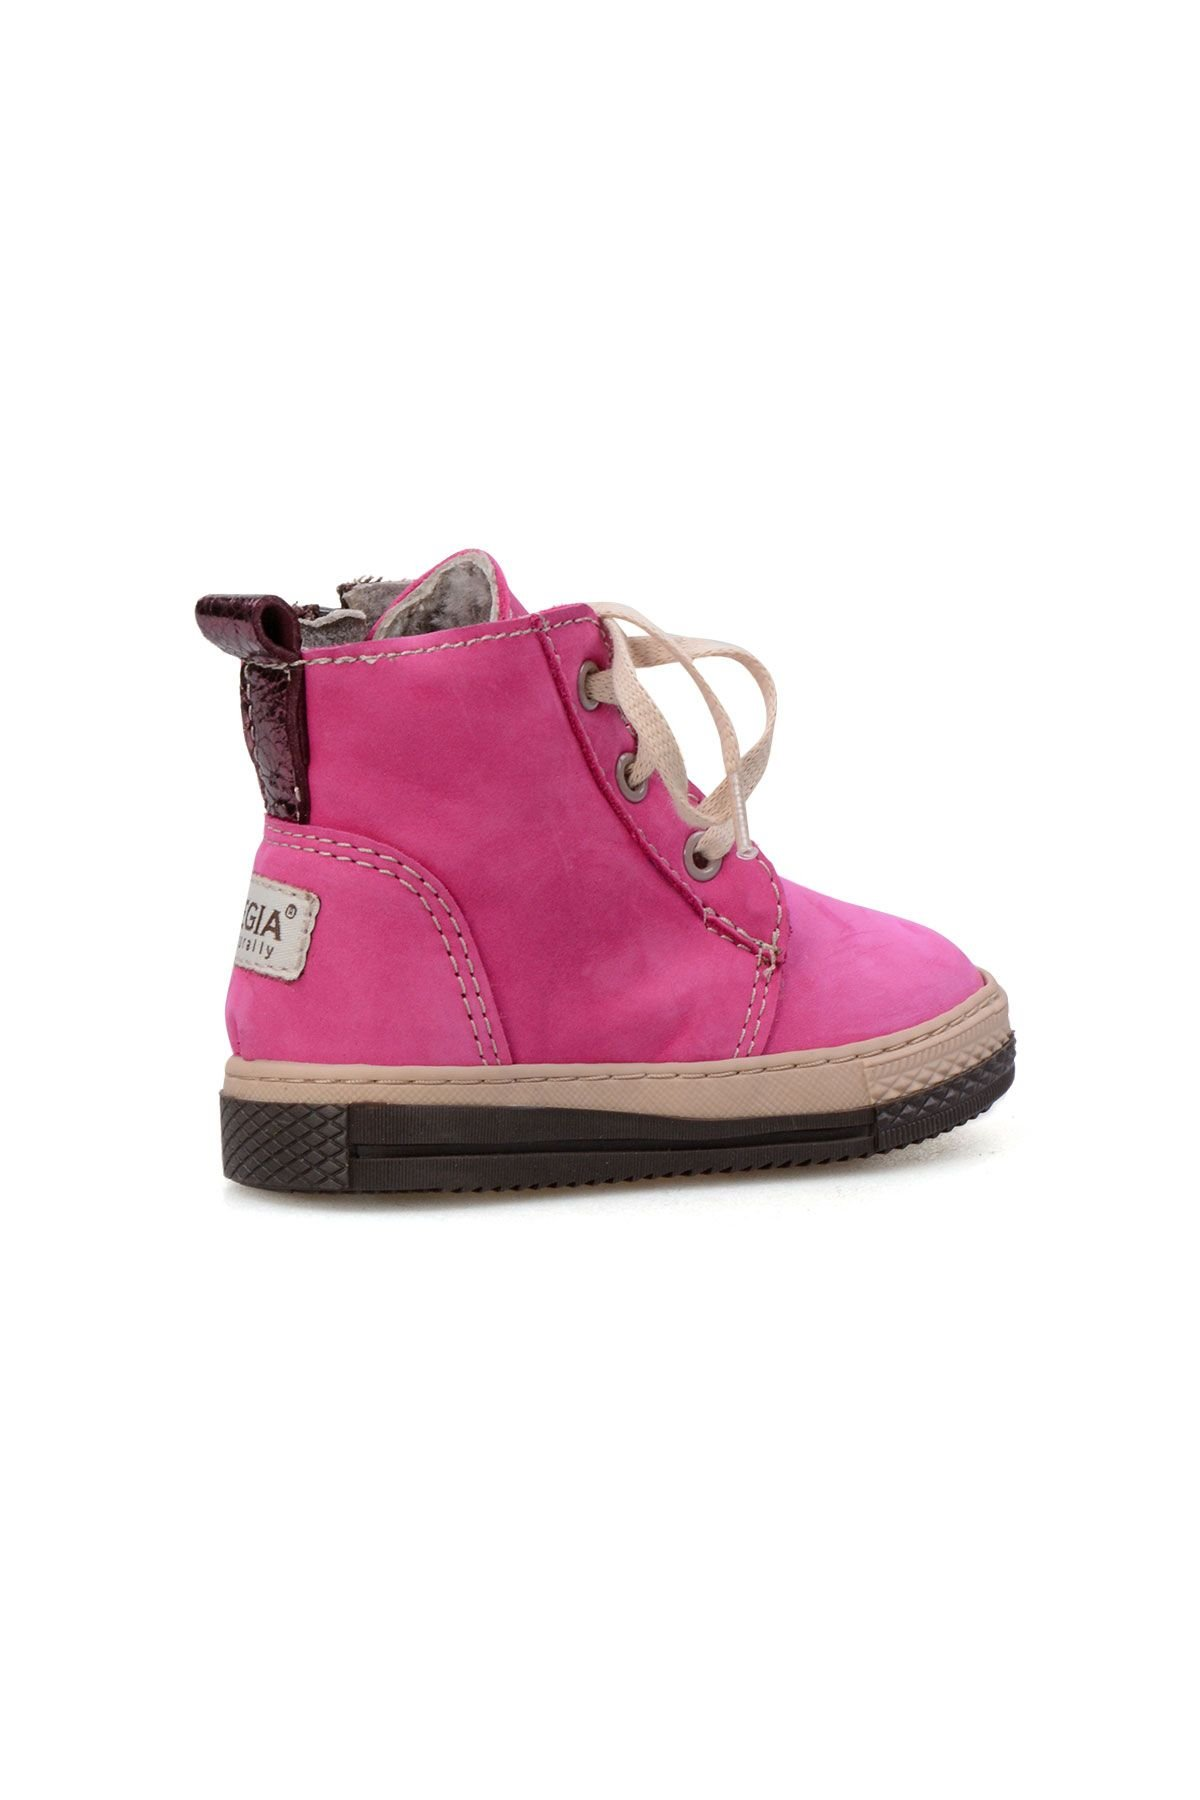 Pegia Genuine Sheepskin Lined Kid's Boots 186024 Pink